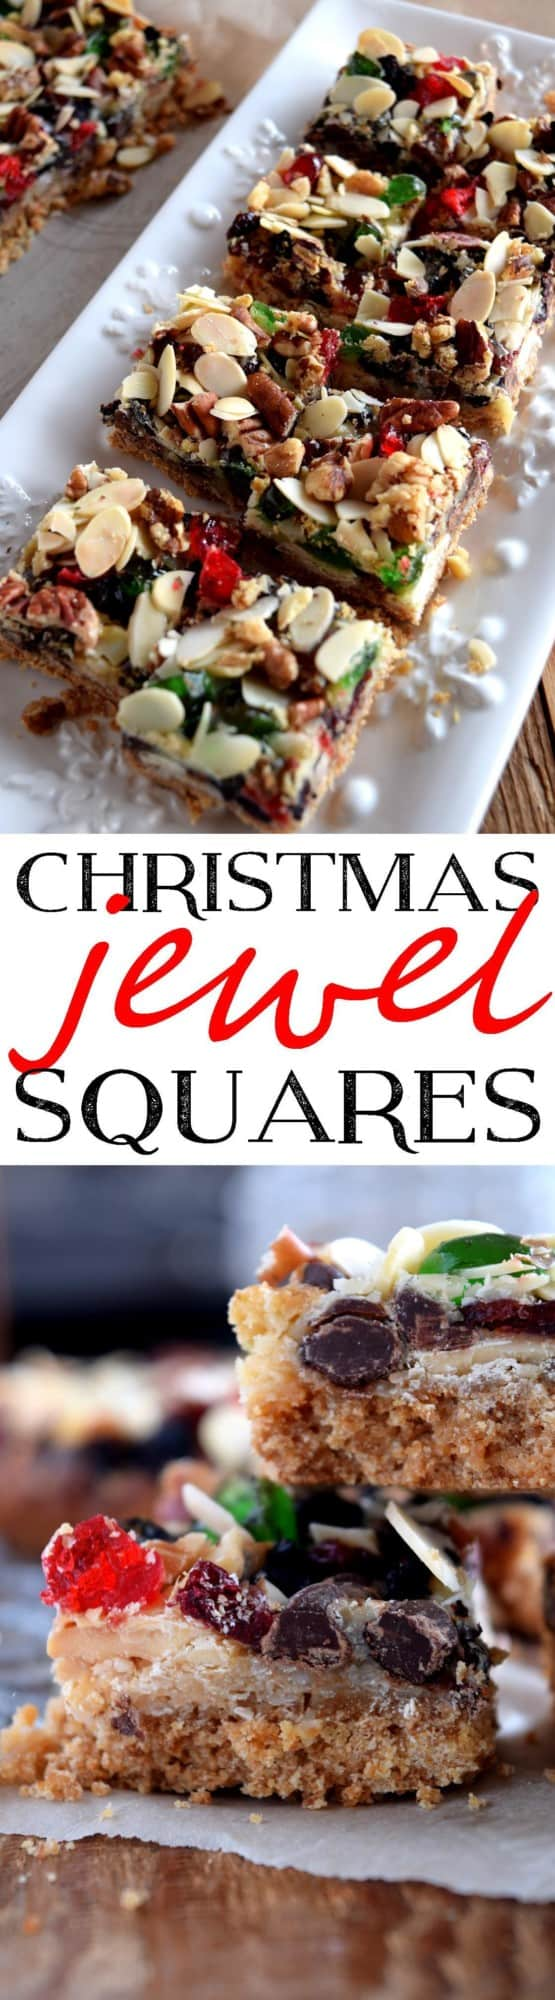 christmas-jewel-squares